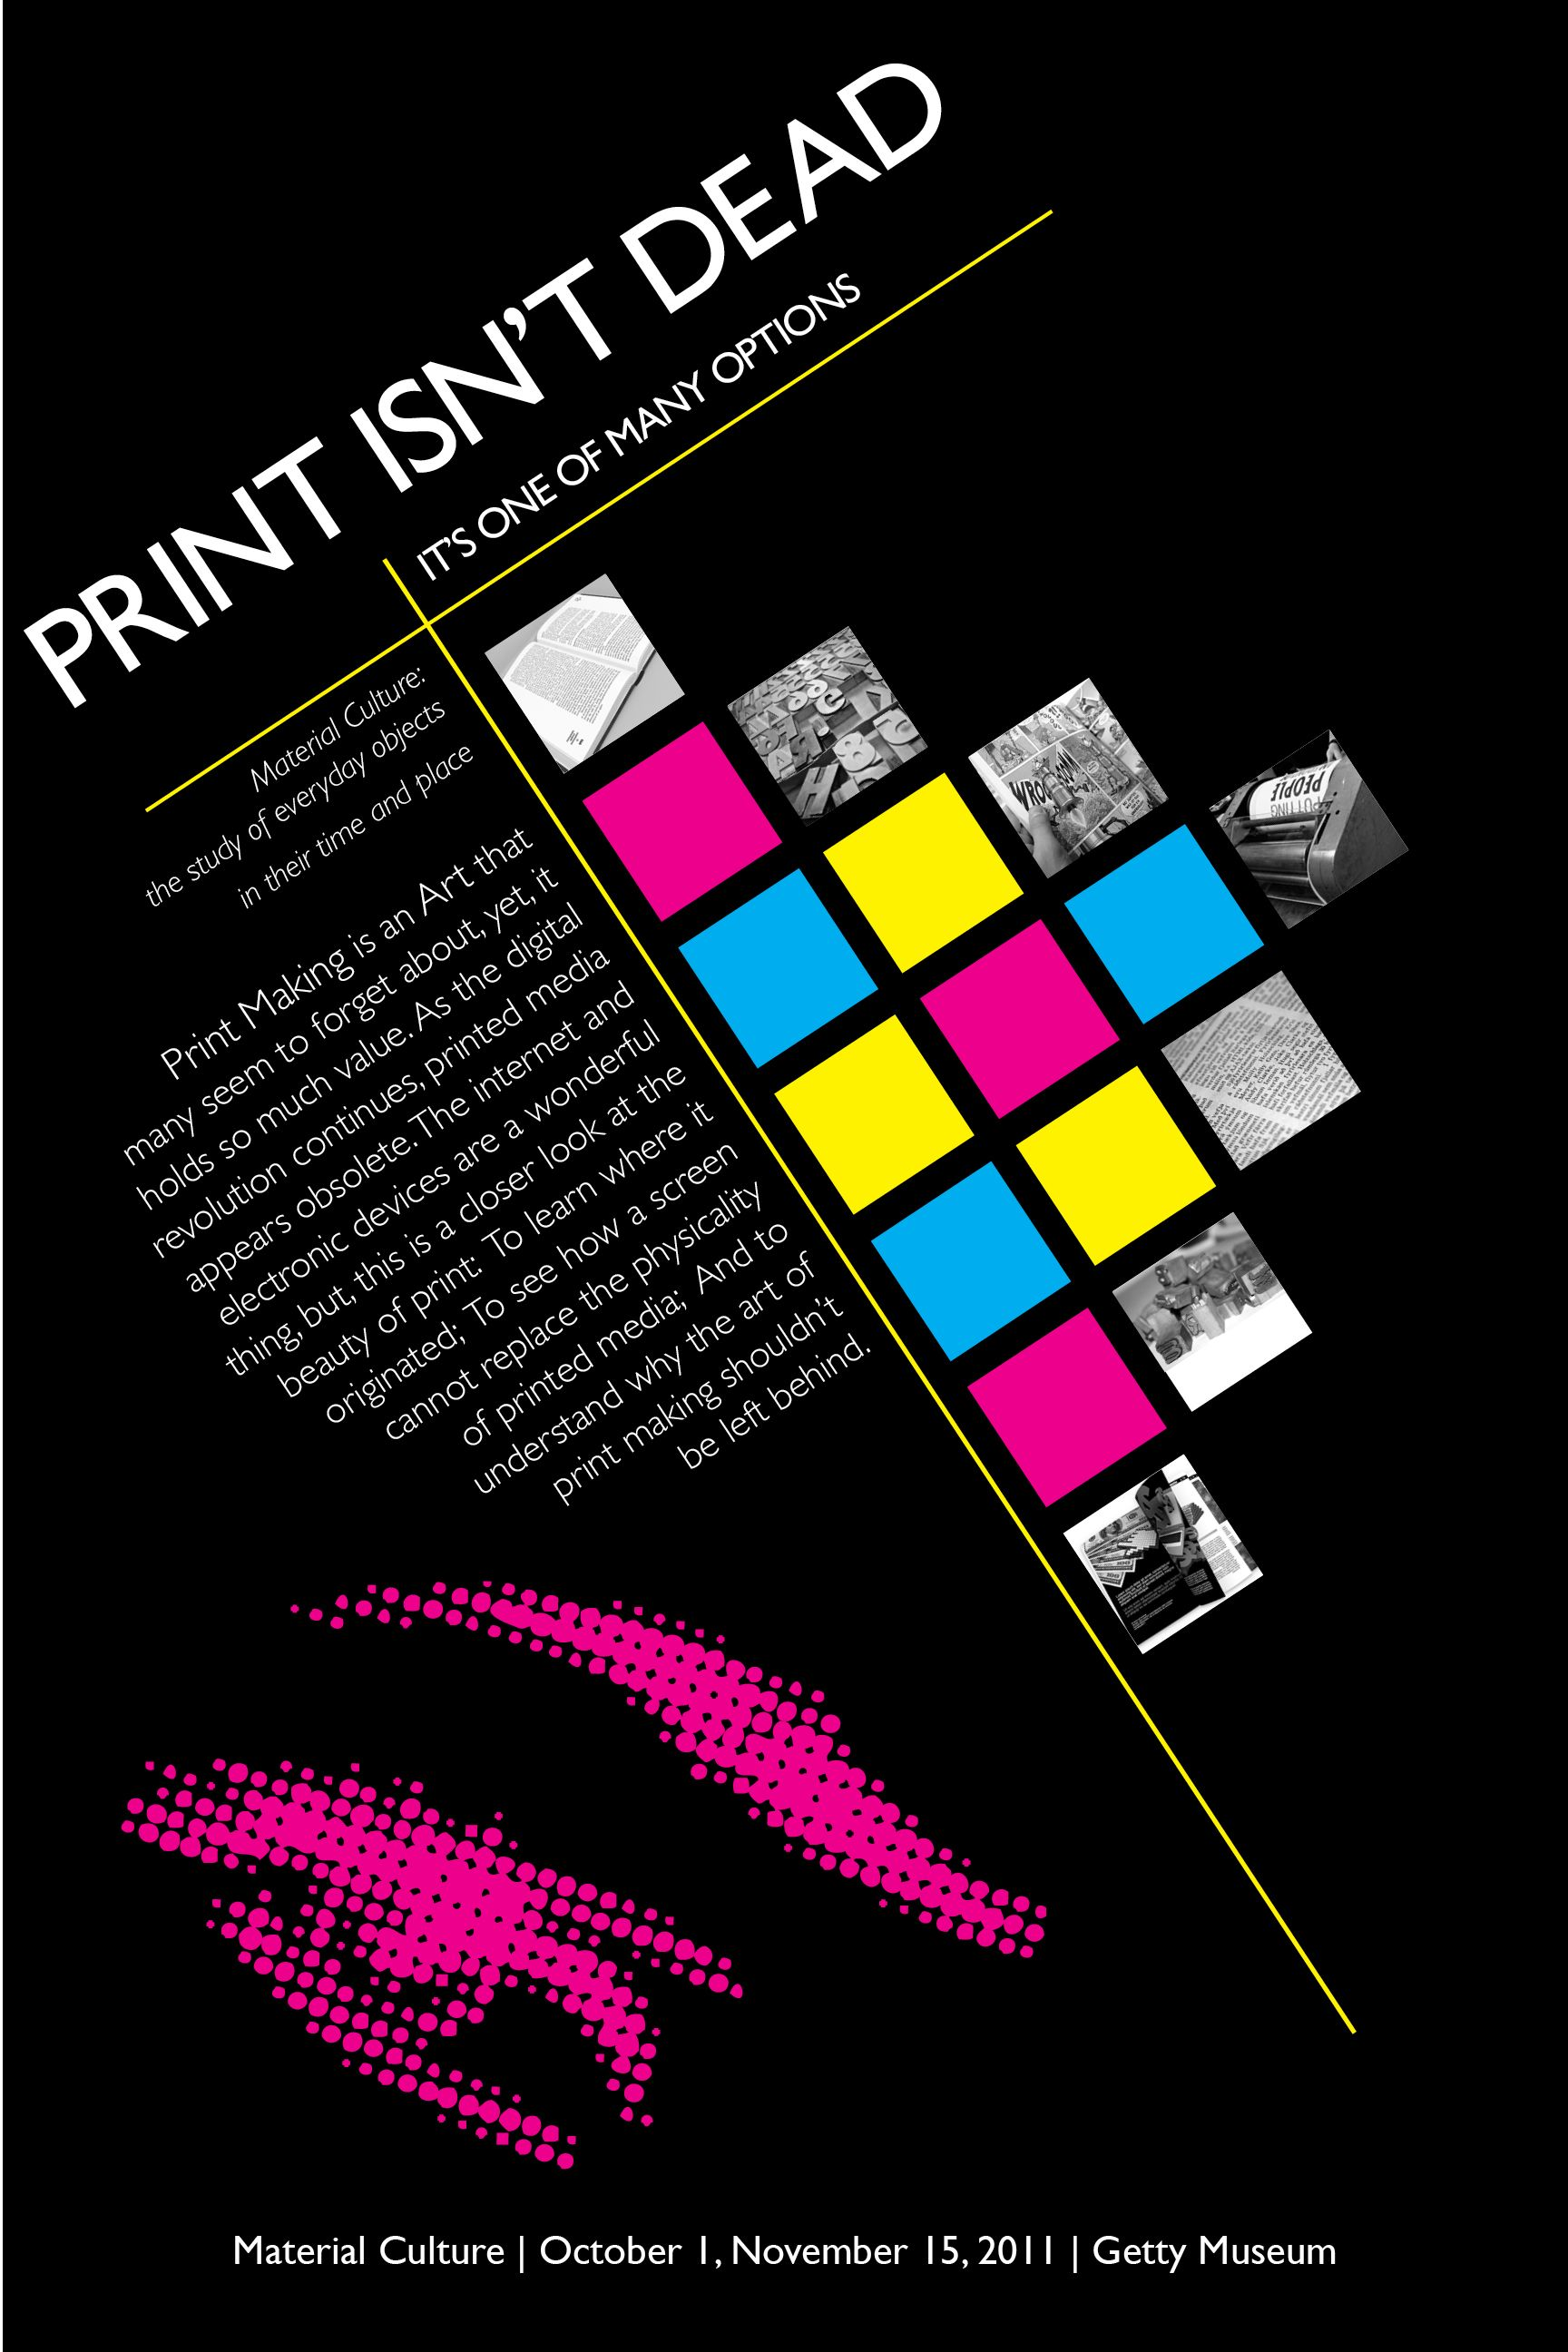 Poster design creator - Blog9 This Is A Grew Exhibition Poster The Squares Represent Repetition Of Form The